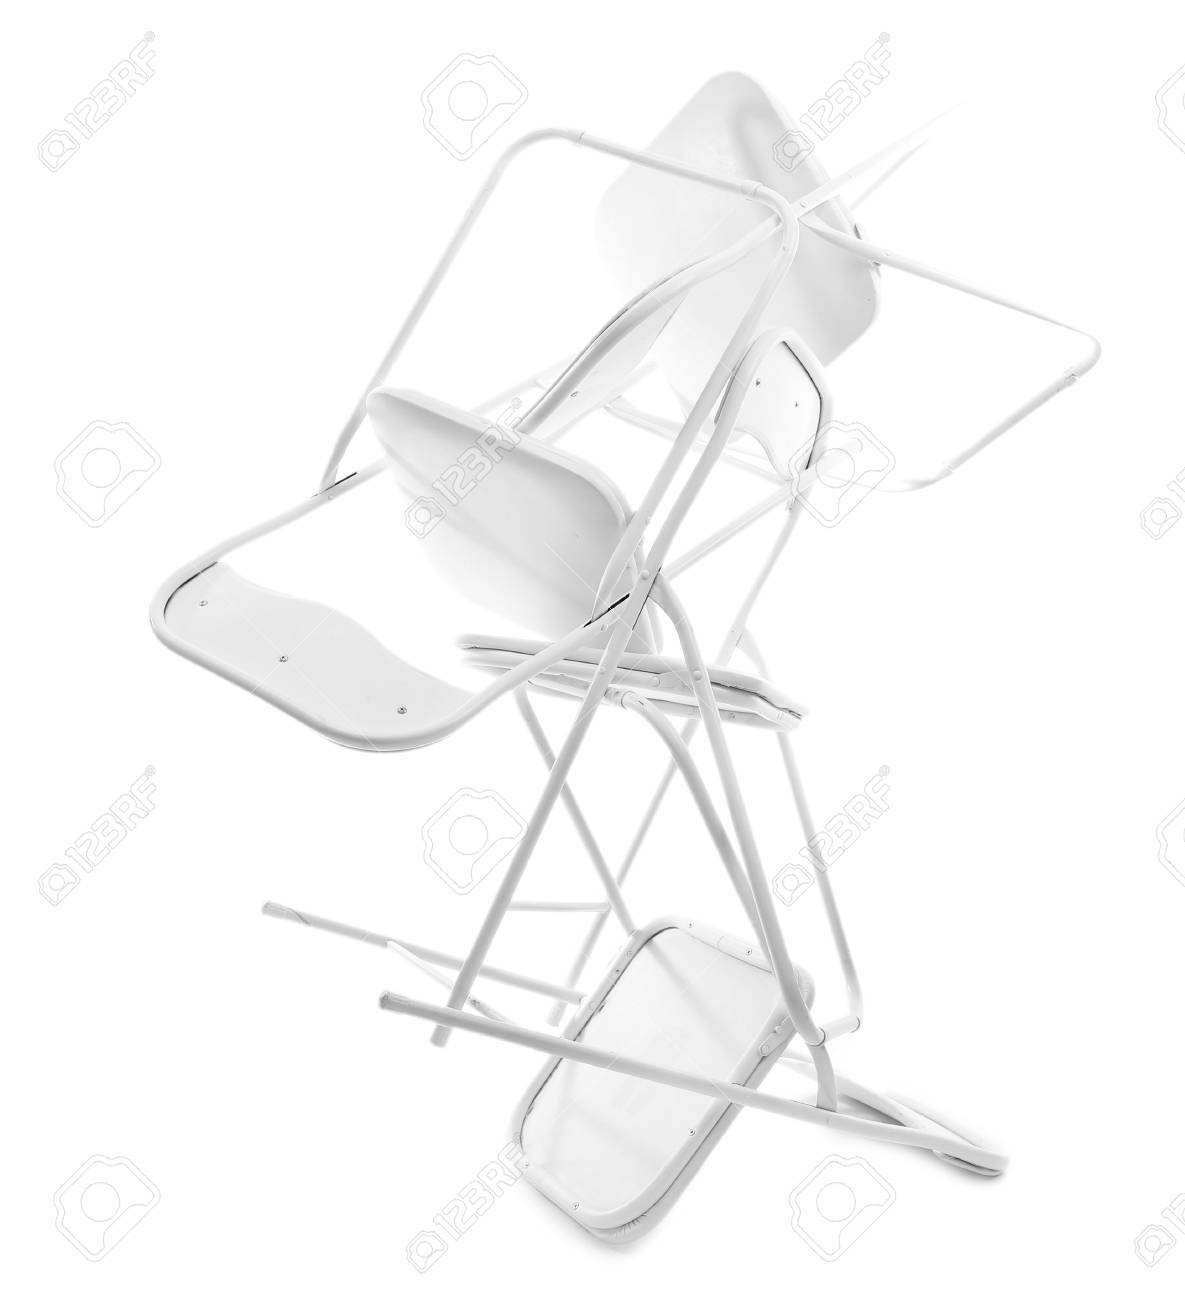 Phenomenal Stack Of Metal Chairs Isolated On White Evergreenethics Interior Chair Design Evergreenethicsorg